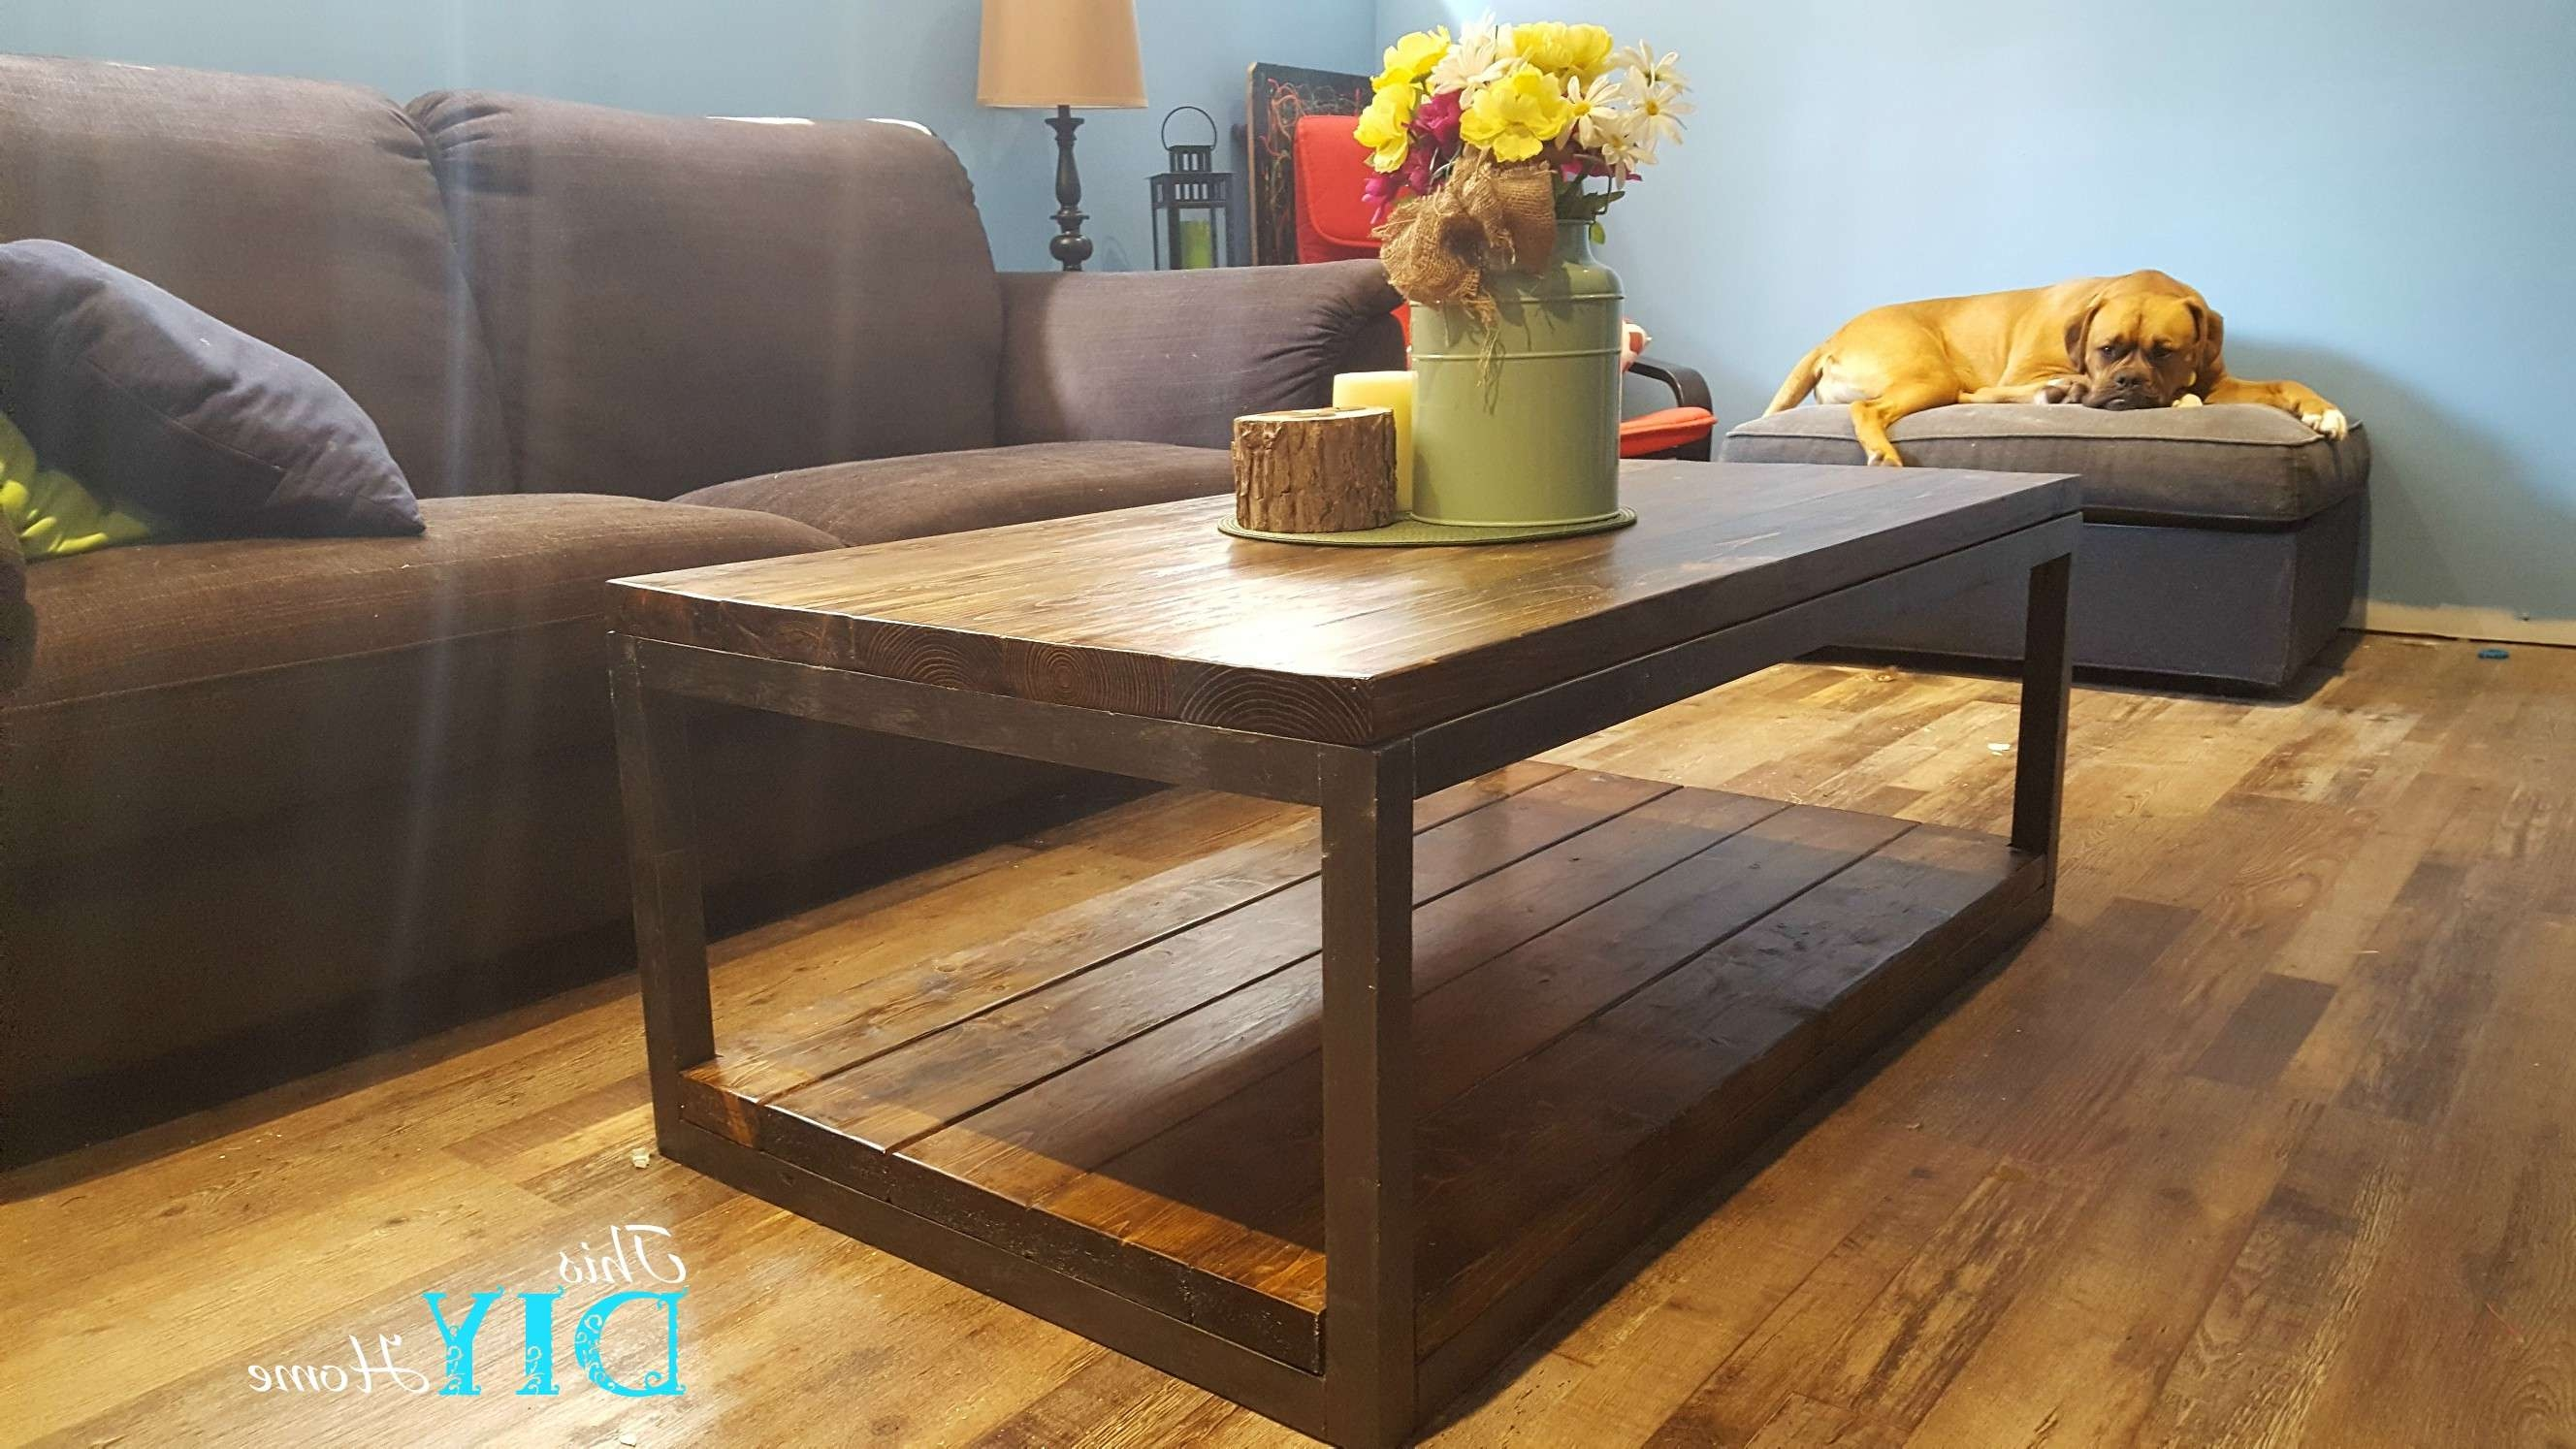 Coffee Tables : Good Looking Antique Style Coffee Tables Vintage With Regard To Well Known Low Industrial Coffee Tables (View 8 of 20)